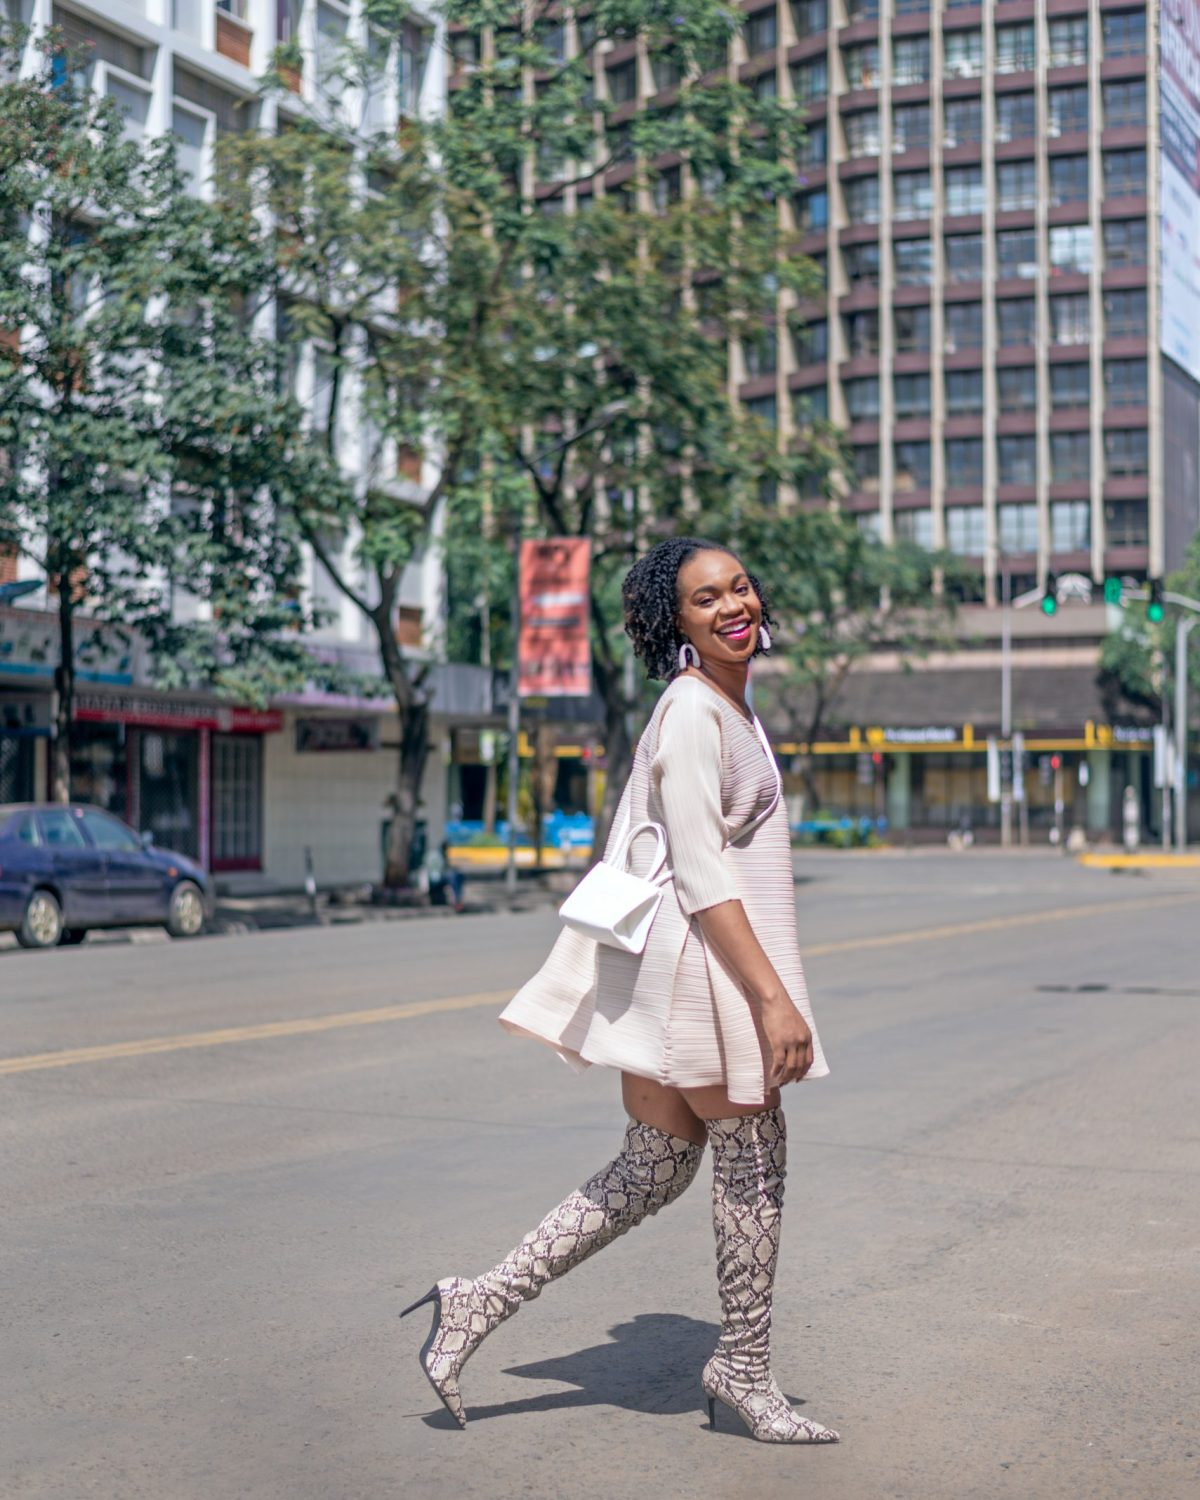 Ijeoma Kola posing in the streets of Nairobi wearing cream mid-sleeve dress, white shoulder sling bag and snake skin thigh high boots - Blog on how to make extra money